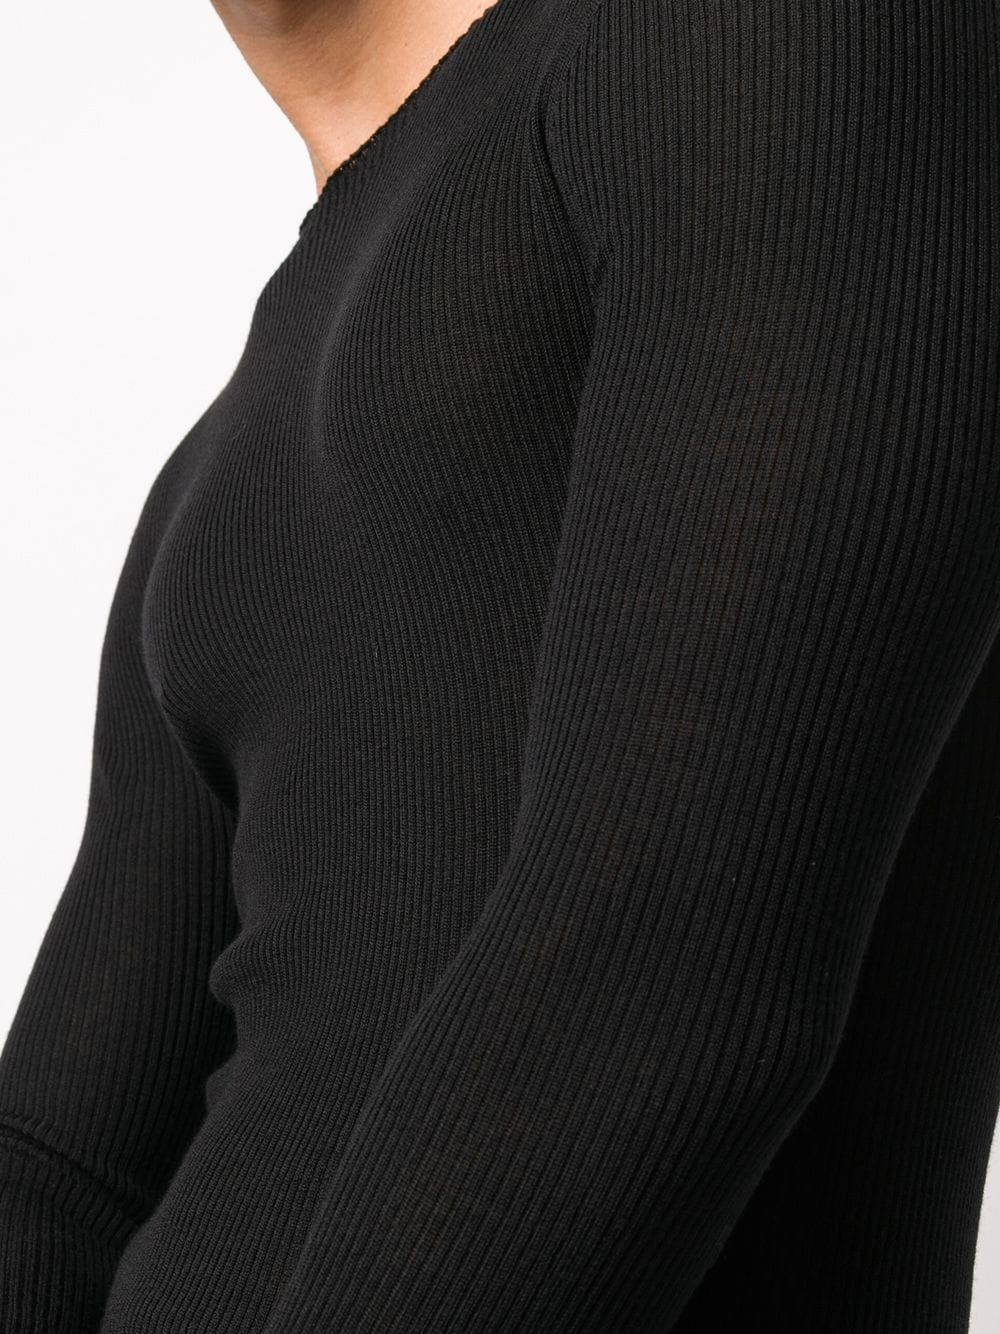 RICK OWENS MEN RIBBED ROUND NECK SWEATER